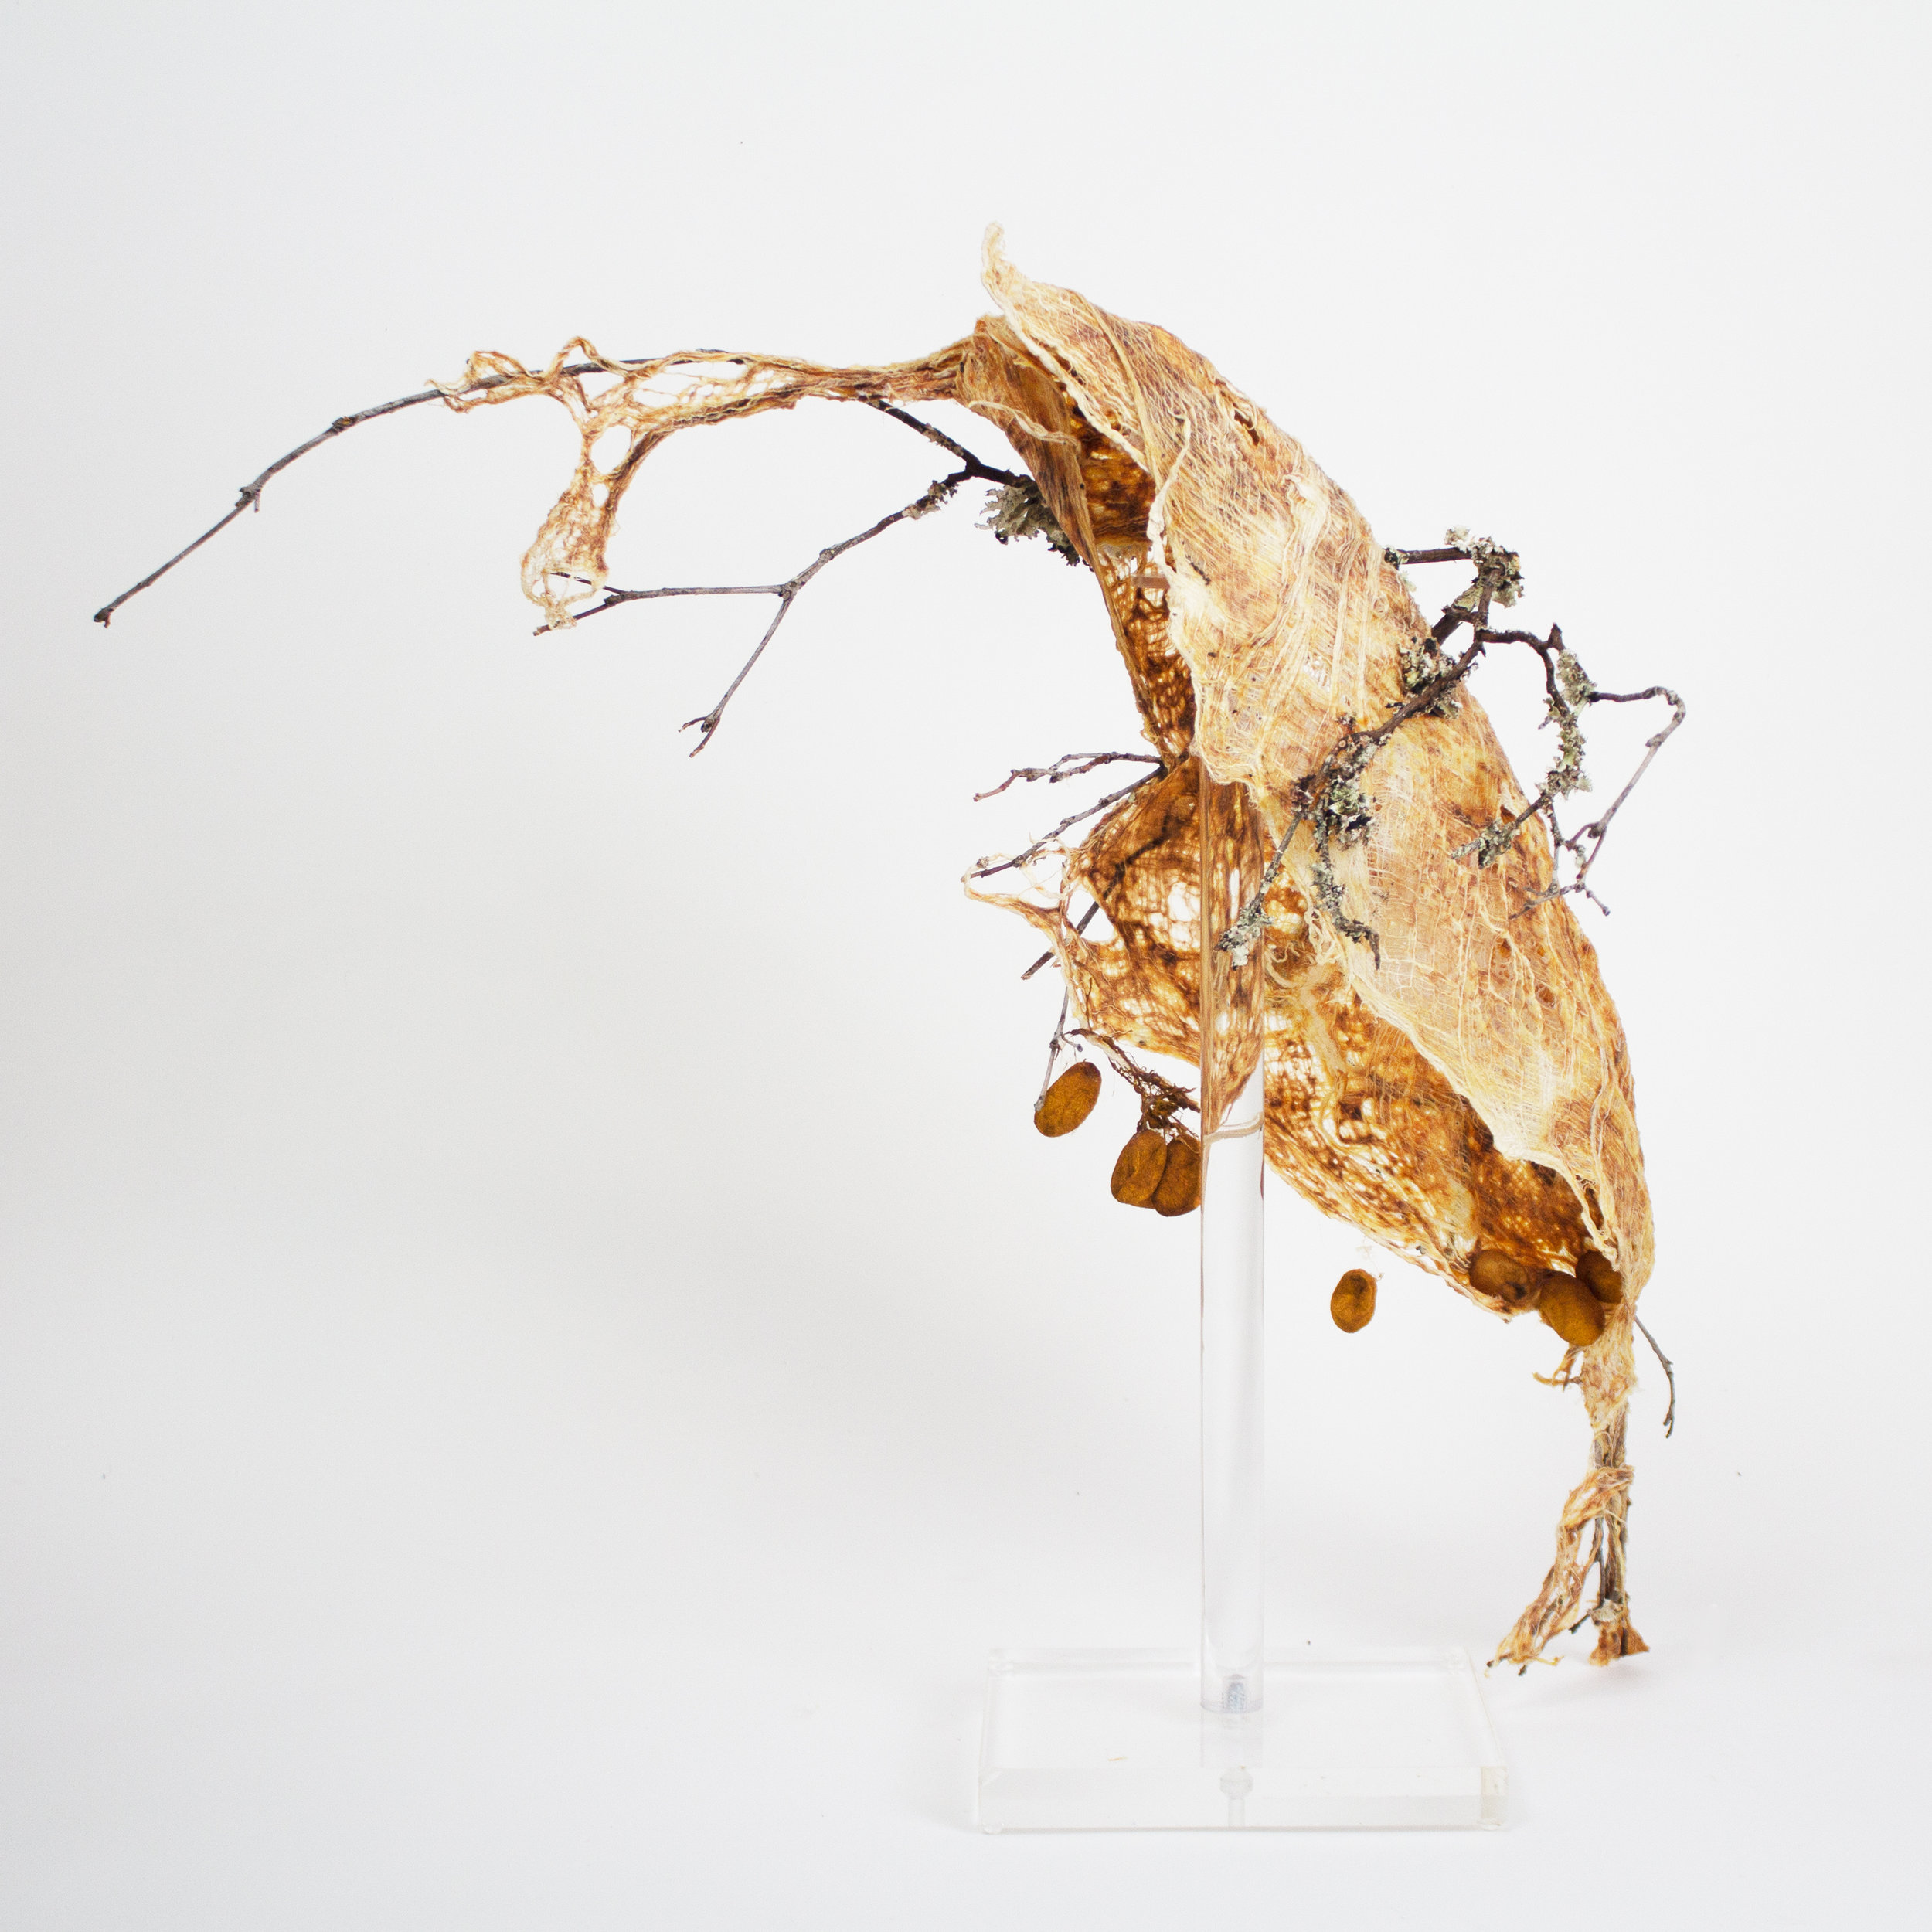 """RELEASED, 2016, CAMBIUM FIBER FROM ASIAN MULBERRY TREE AND BRANCH, 27""""H x 25""""W x 24""""D, Not For Sale"""